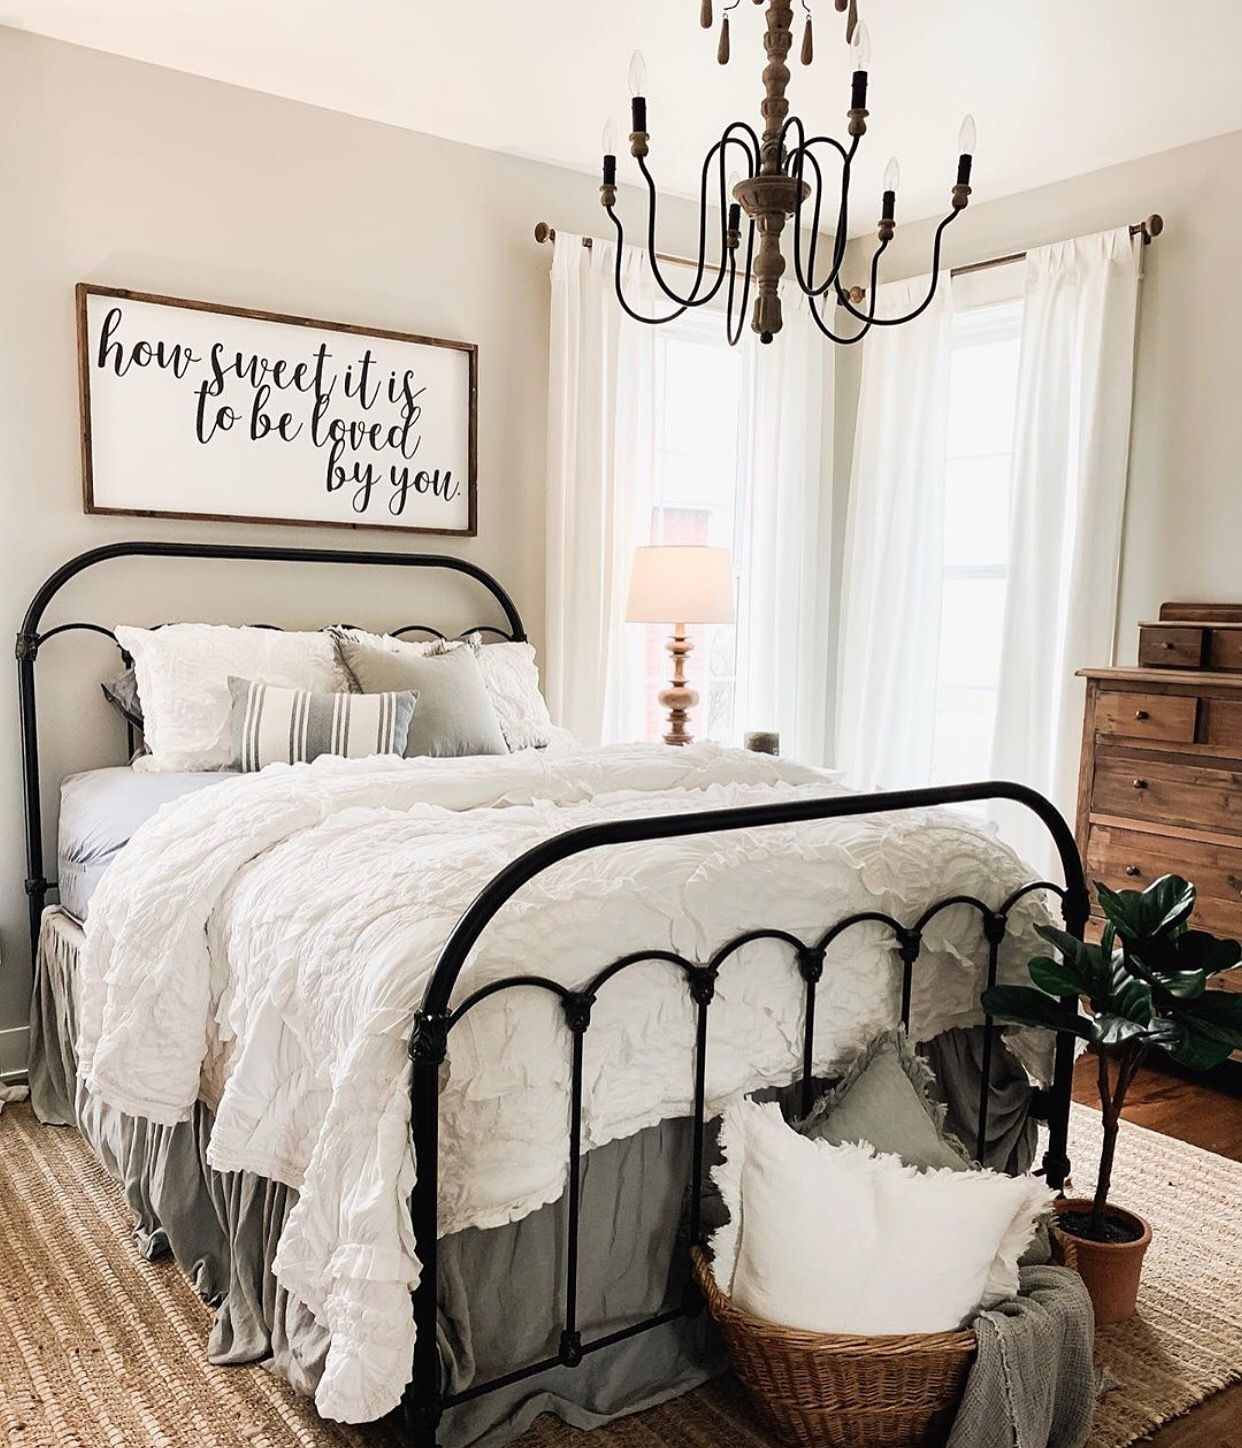 Modern Farmhouse Bedroom Sign  #modernfarmhousebedroom